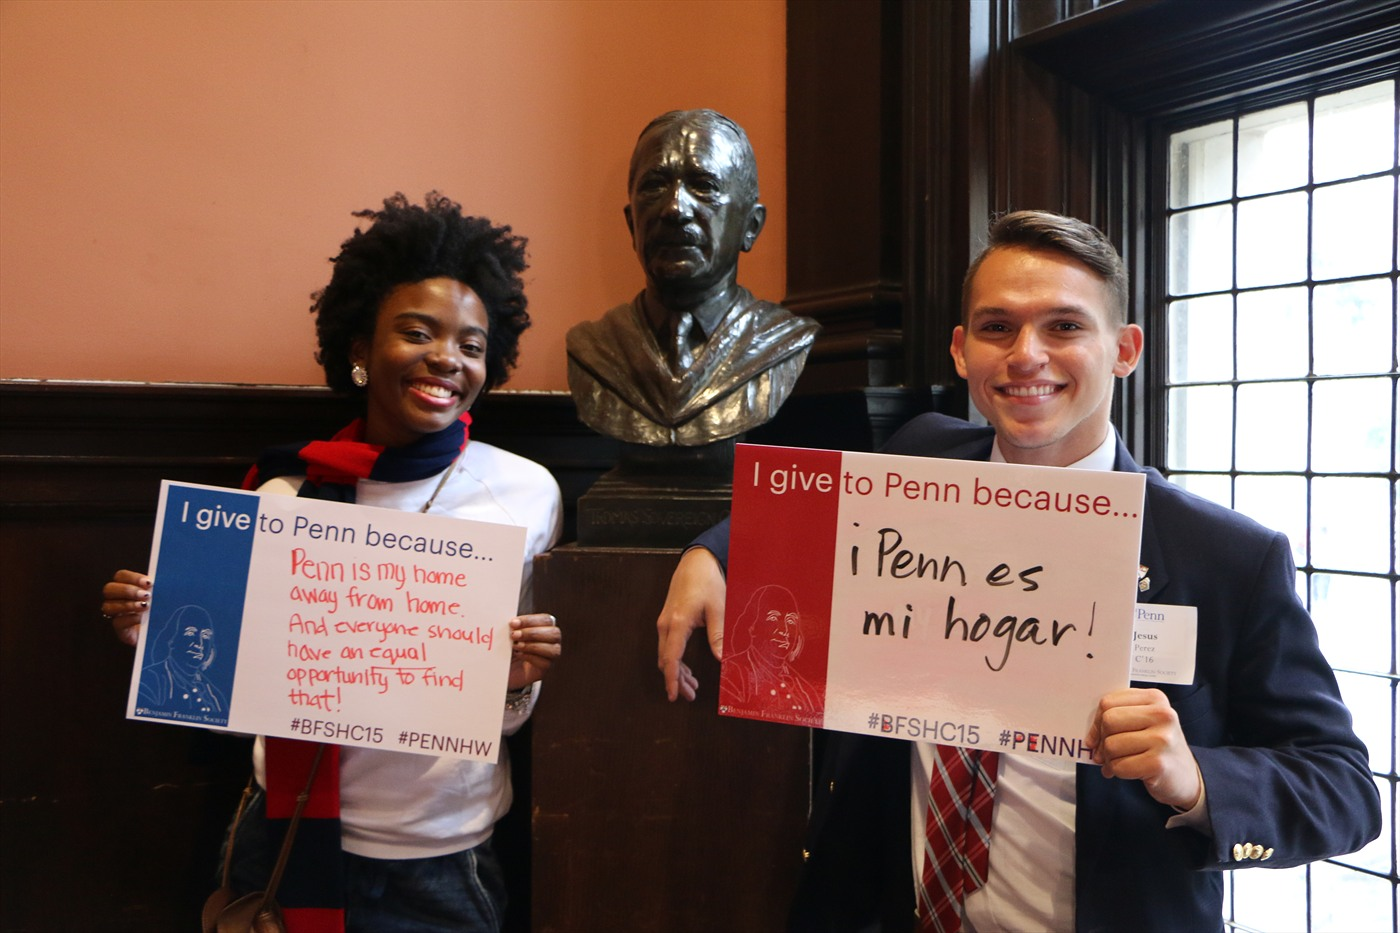 Penn students show why they support student philanthropy